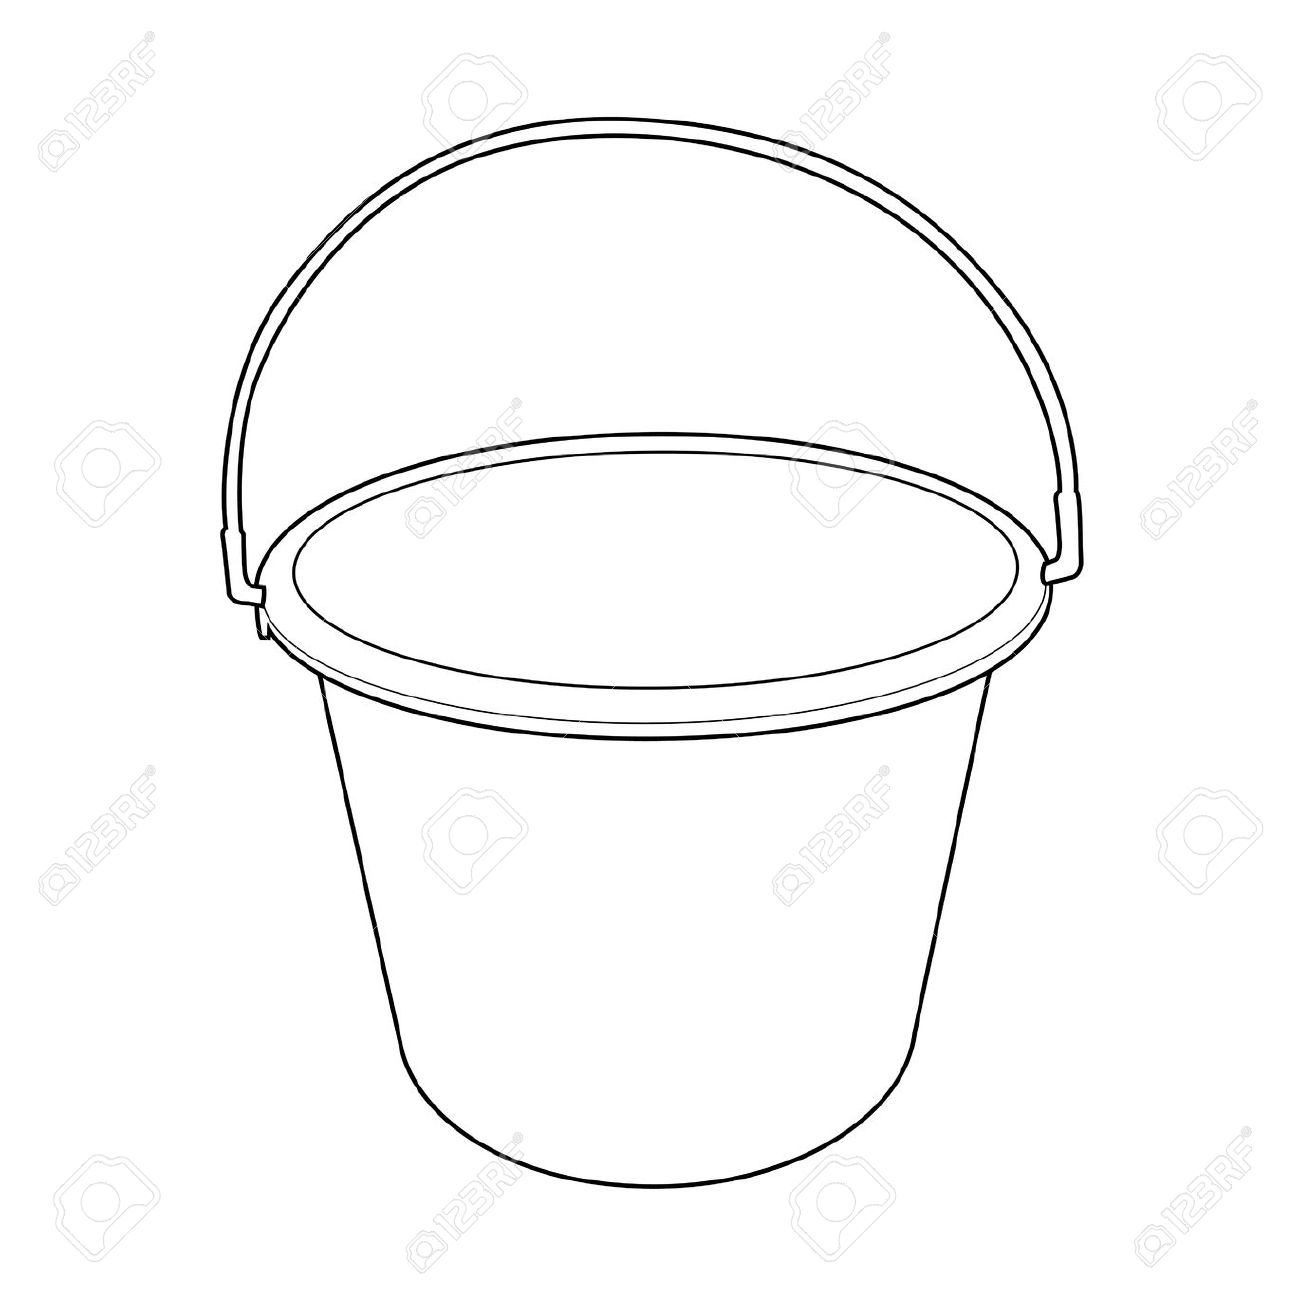 Water Bucket Outline Royalty Free Cliparts, Vectors, And Stock.